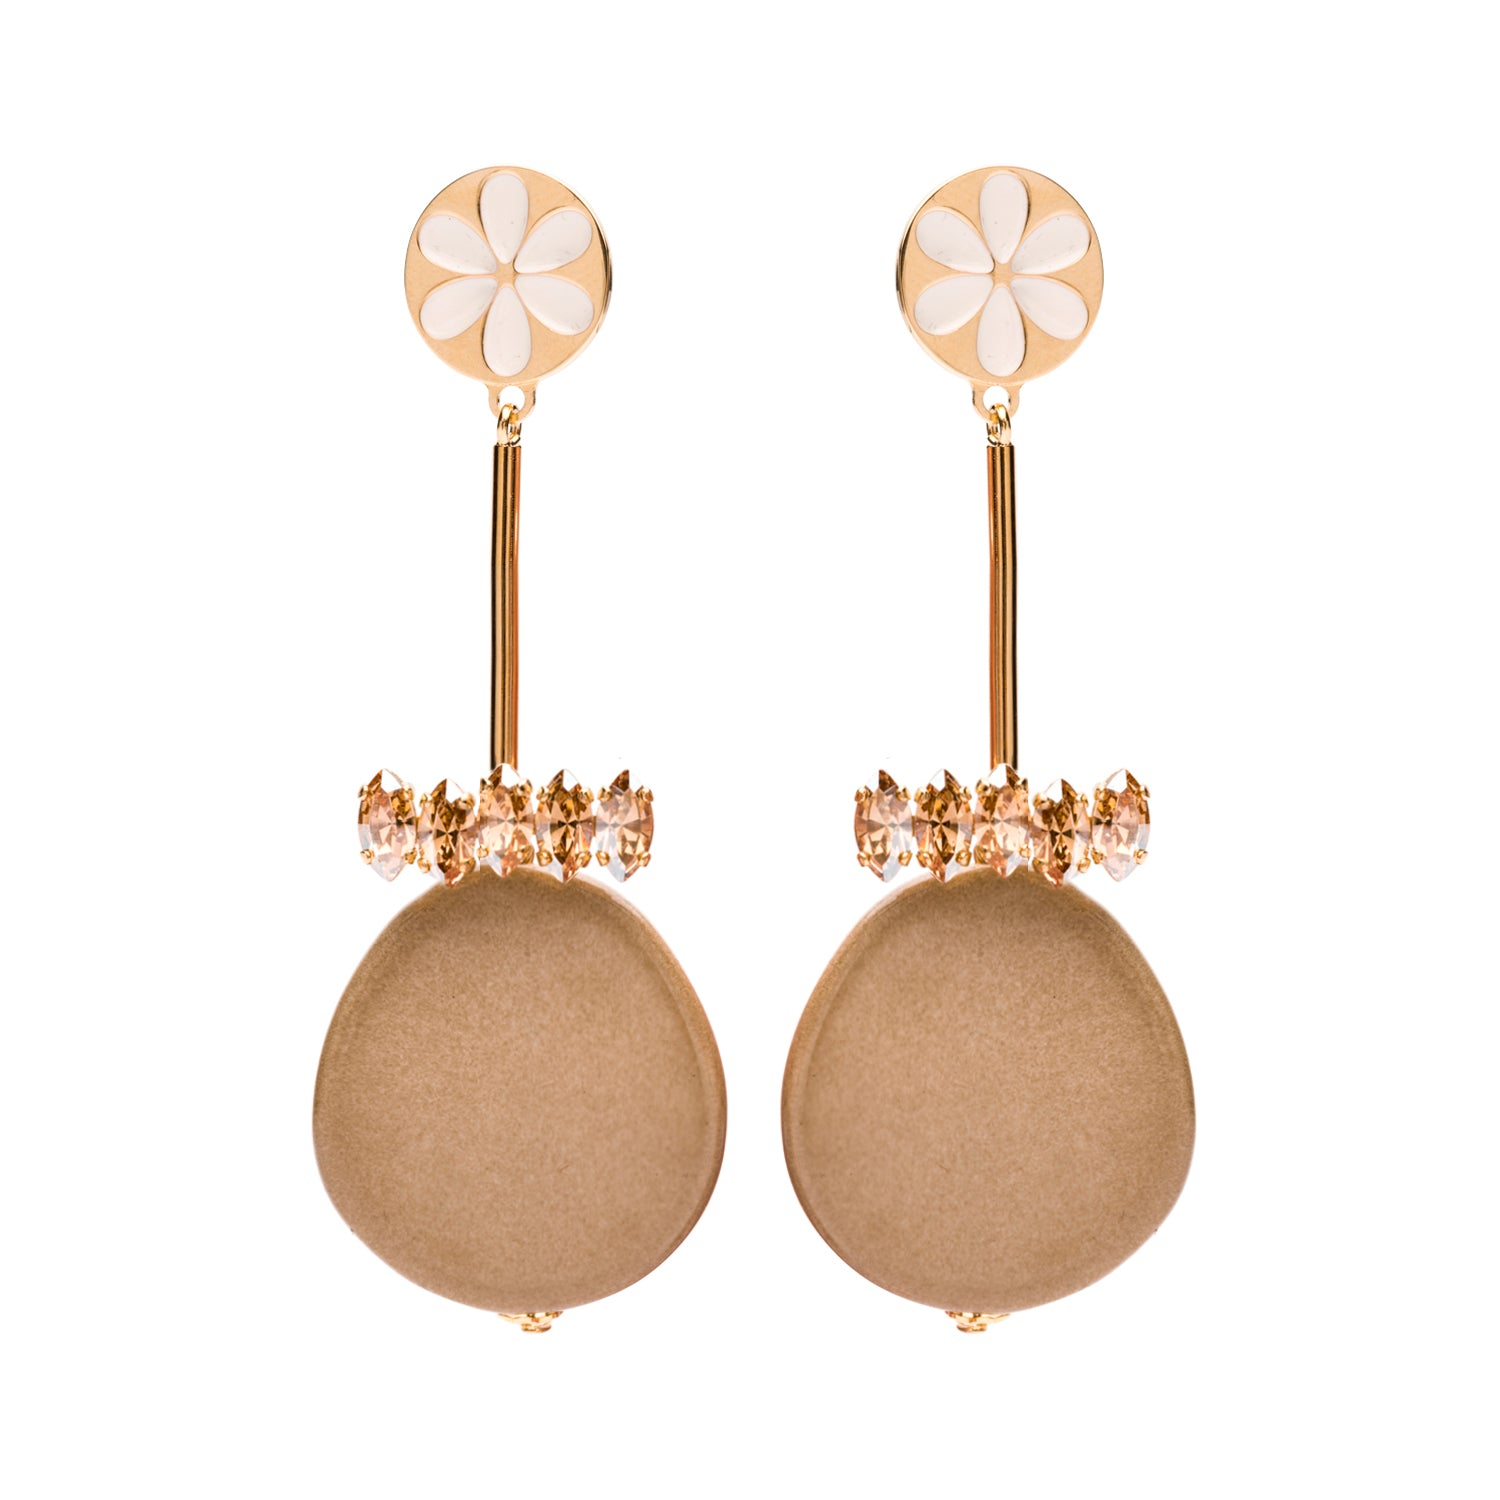 Peru enamel beige earrings